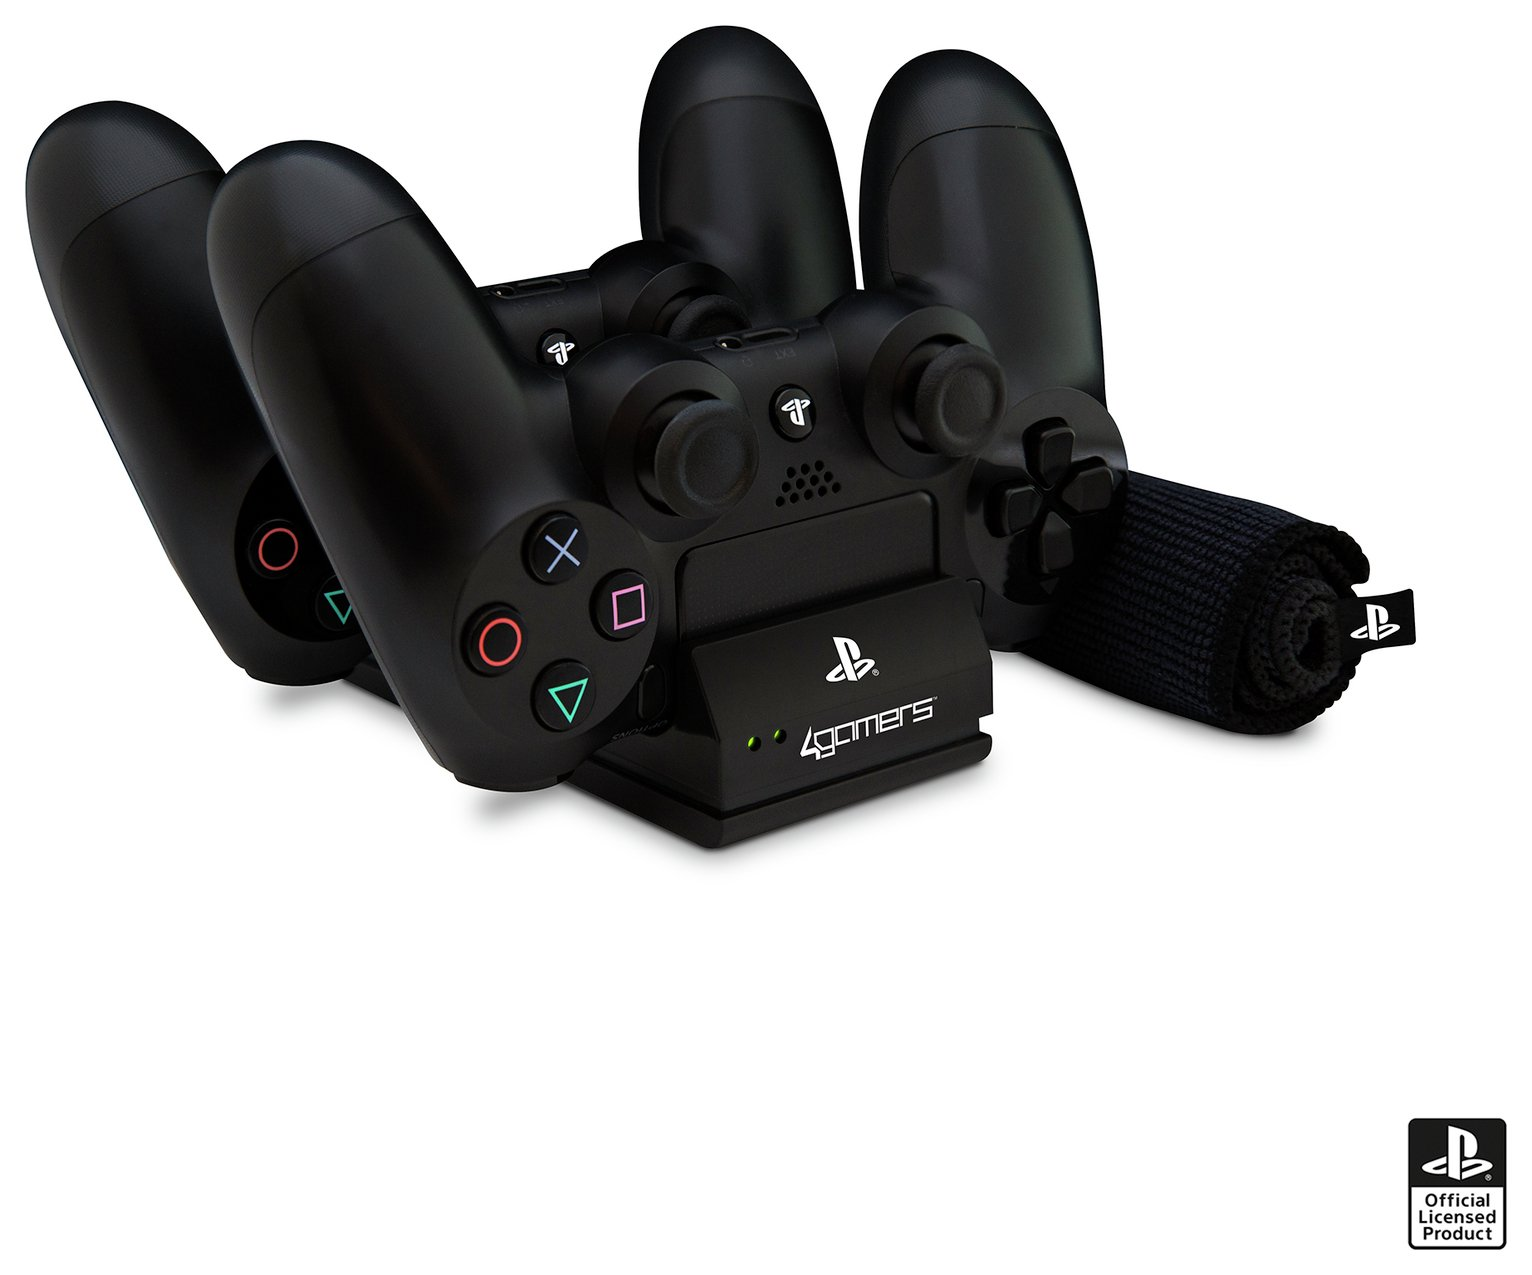 4gamers-twin-charging-dock-for-ps4-controllers